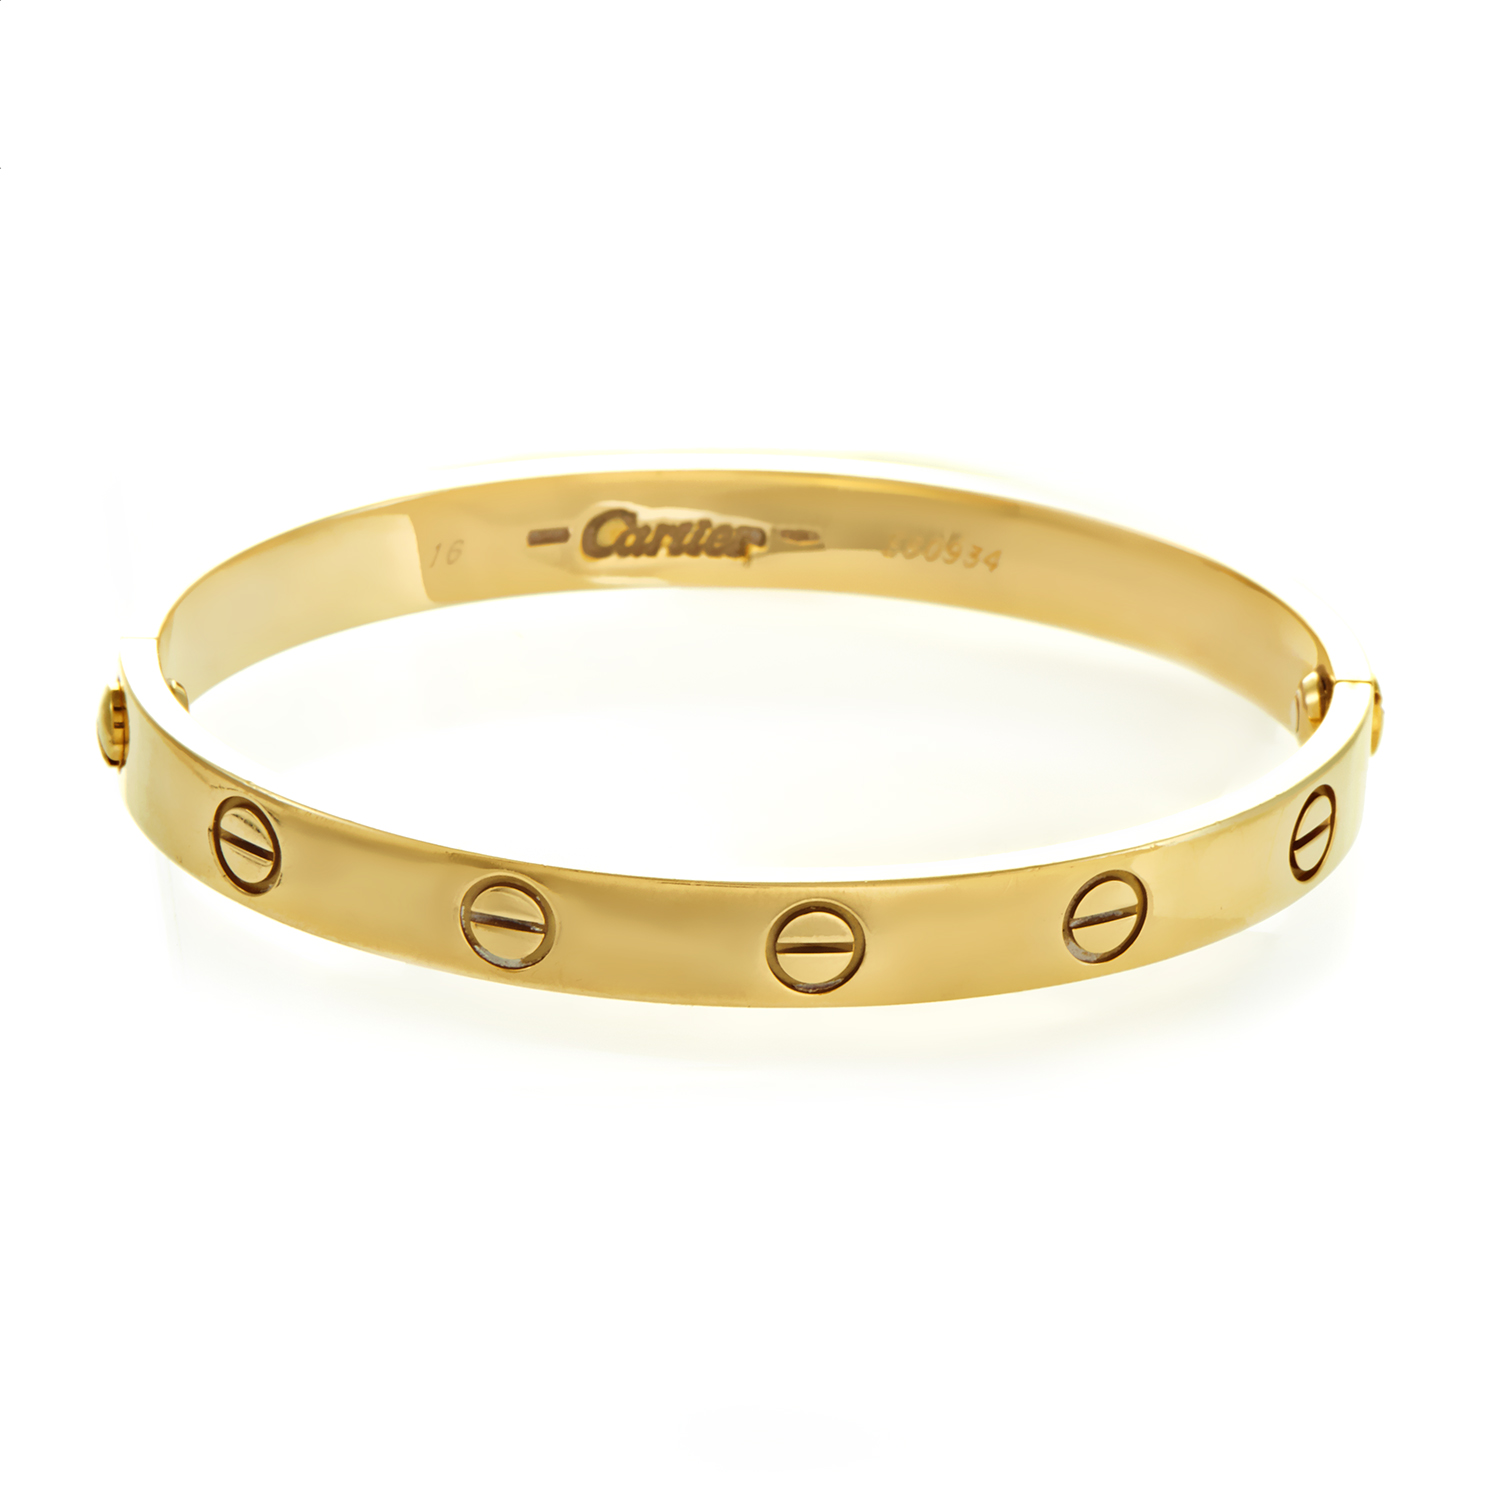 Cartier LOVE Women's 18K Yellow Gold Bracelet Size 16 | eBay